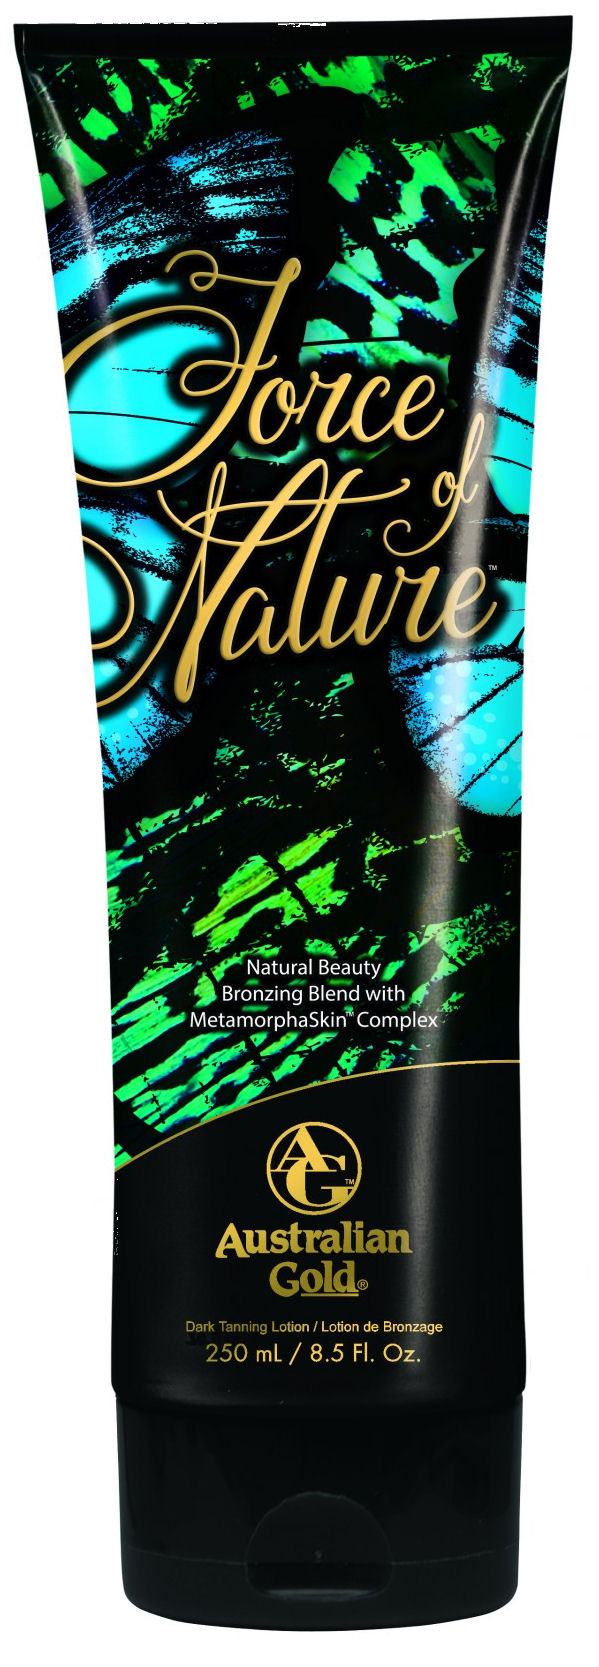 Force of Nature™ Natural Beauty Bronzing Blend BOTTLES AND PKTS ON SALE!